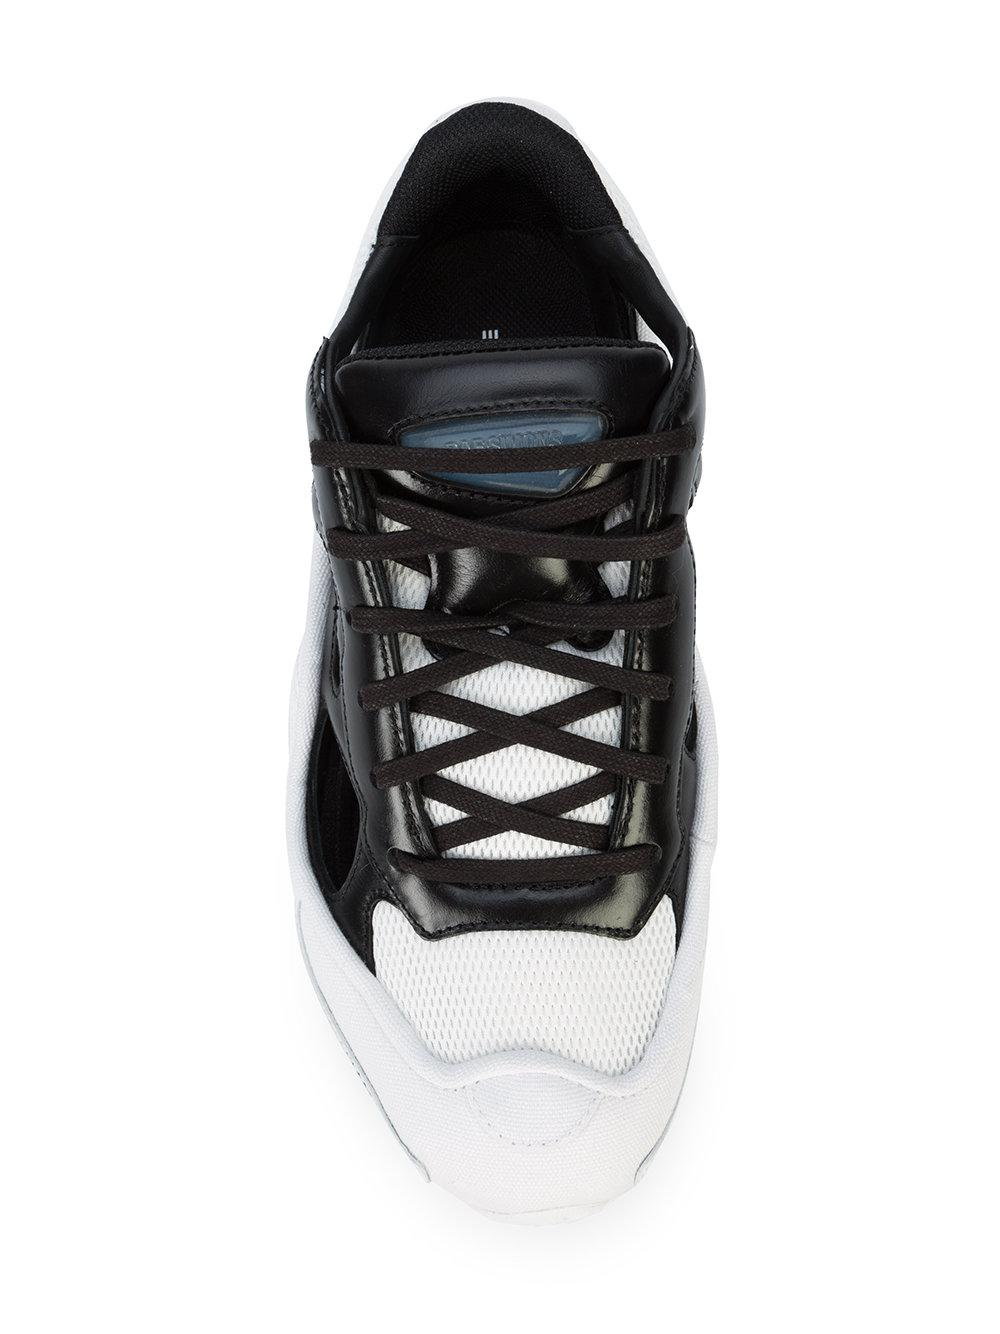 adidas By Raf Simons Leather Replicant Ozweego Sneakers in Black